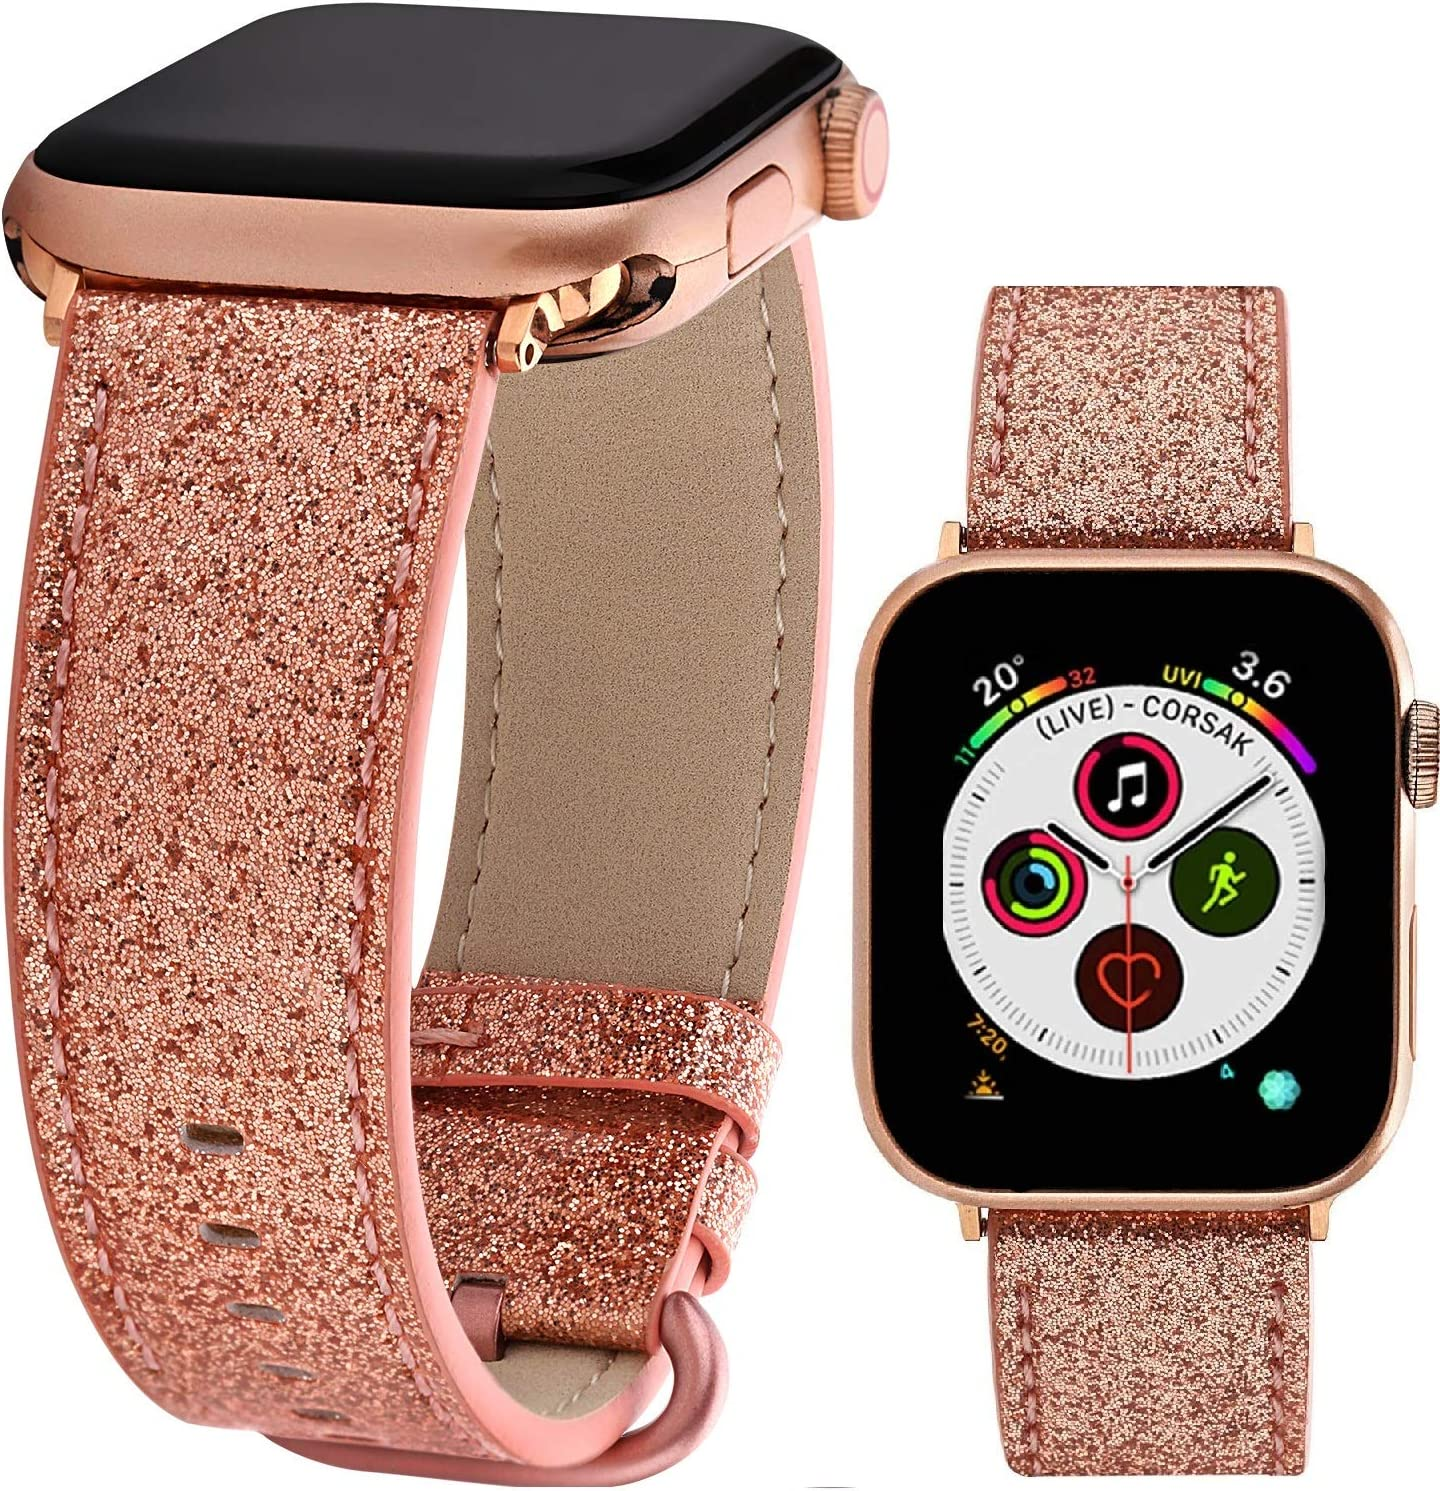 Greaciary Glitter Leather Band Compatible with Apple Watch Band,Shiny Bling Elegant Genuine Leather Strap Compatible for iWatch Series 5/4/3/2/1,Sport Edition Women Girl (Light Rose Gold, 42mm/44mm)